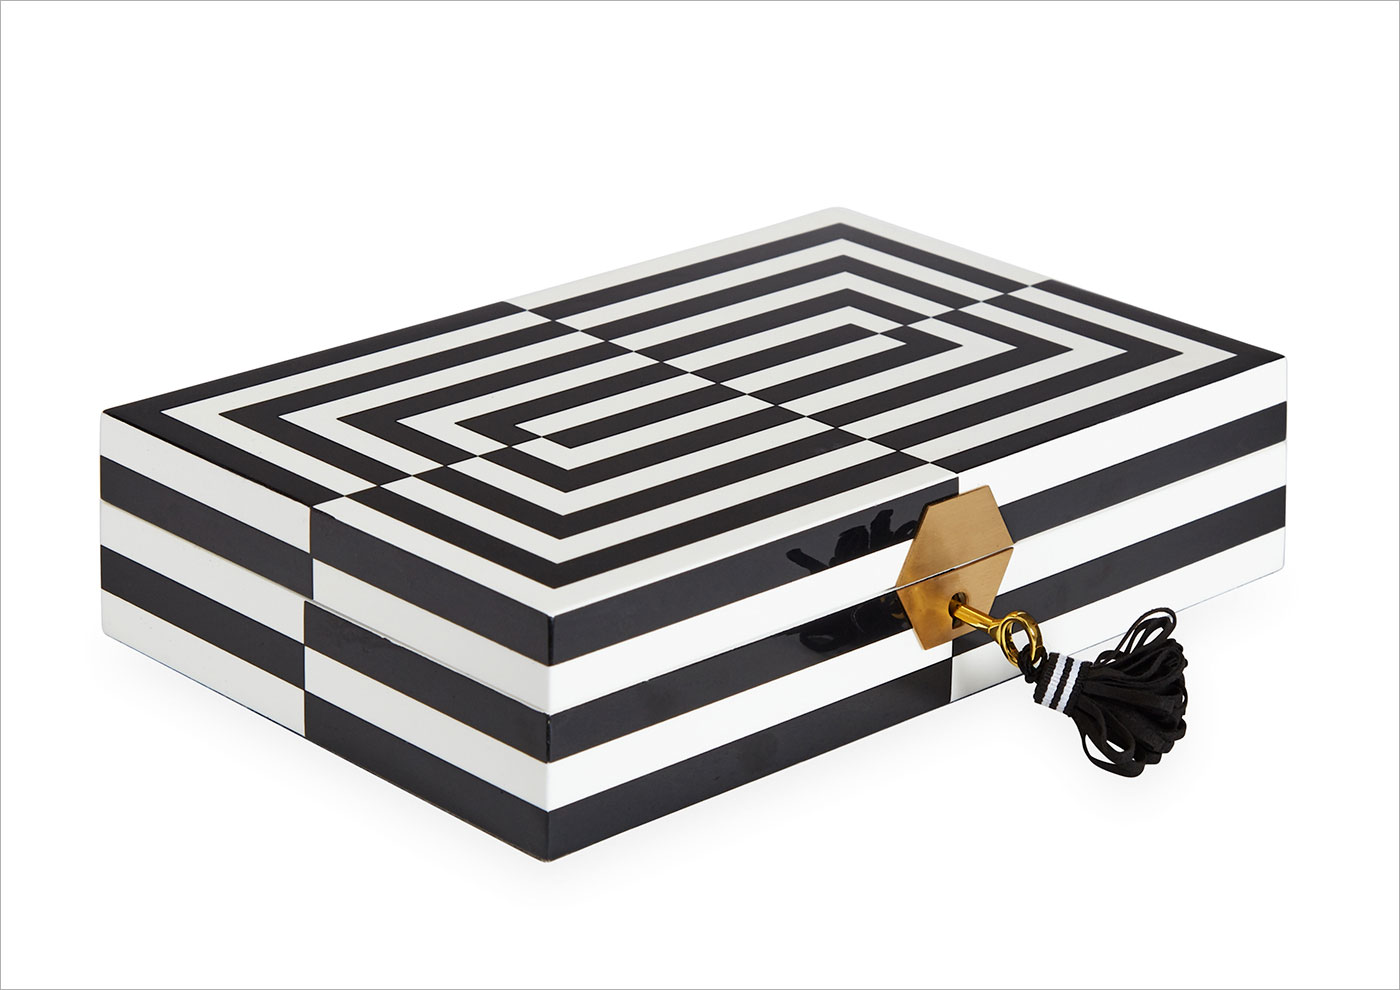 jonathan adler geo black white gold jewelry box mother's day gift ideas jonathan adler